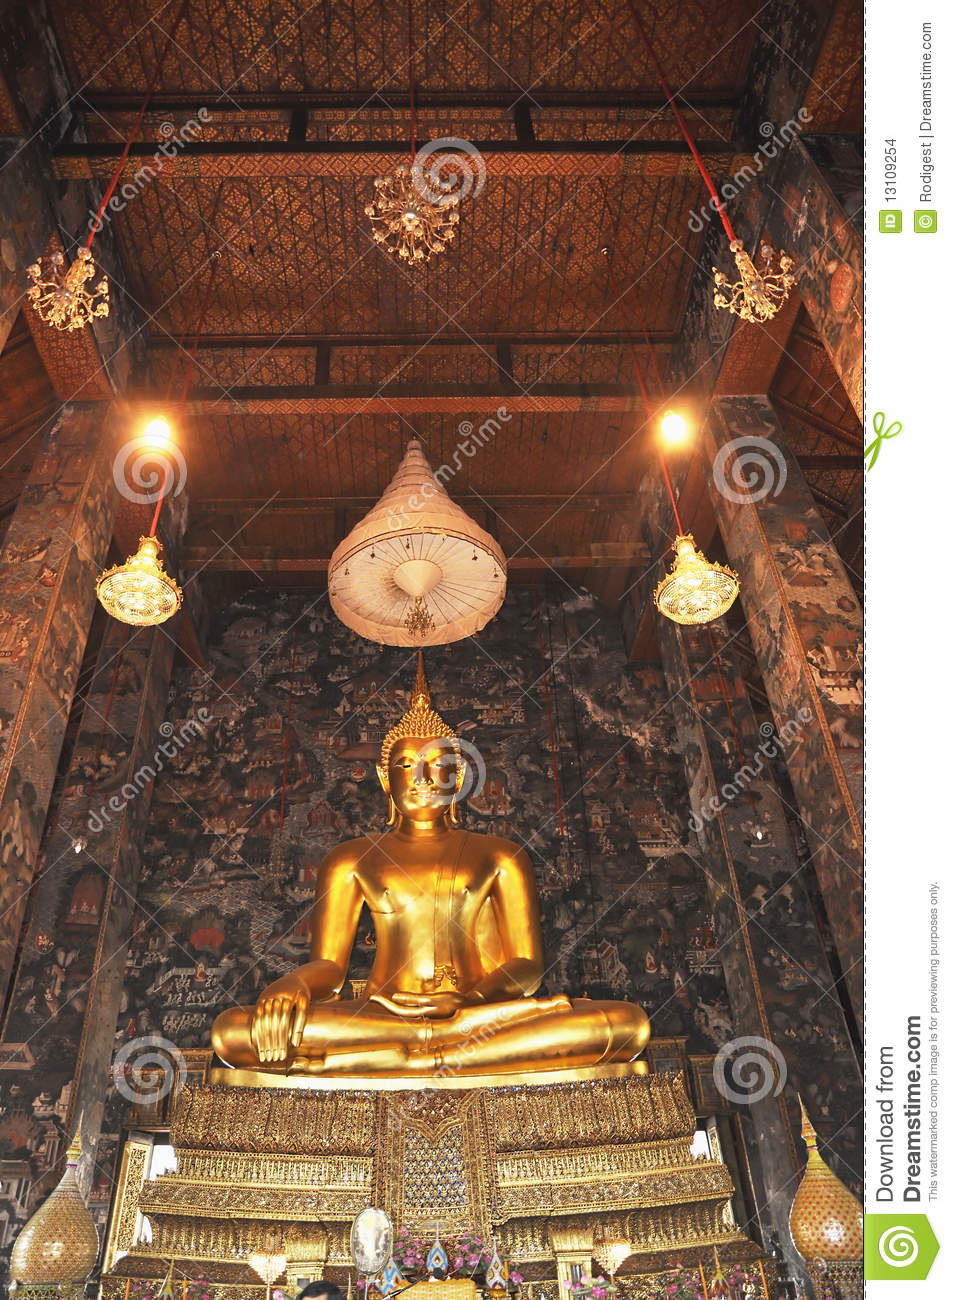 grand mound buddhist singles Search for properties in dewitt, grand mound, long grove, park view, welton, wheatland, calamus and mccausland regions for sale.